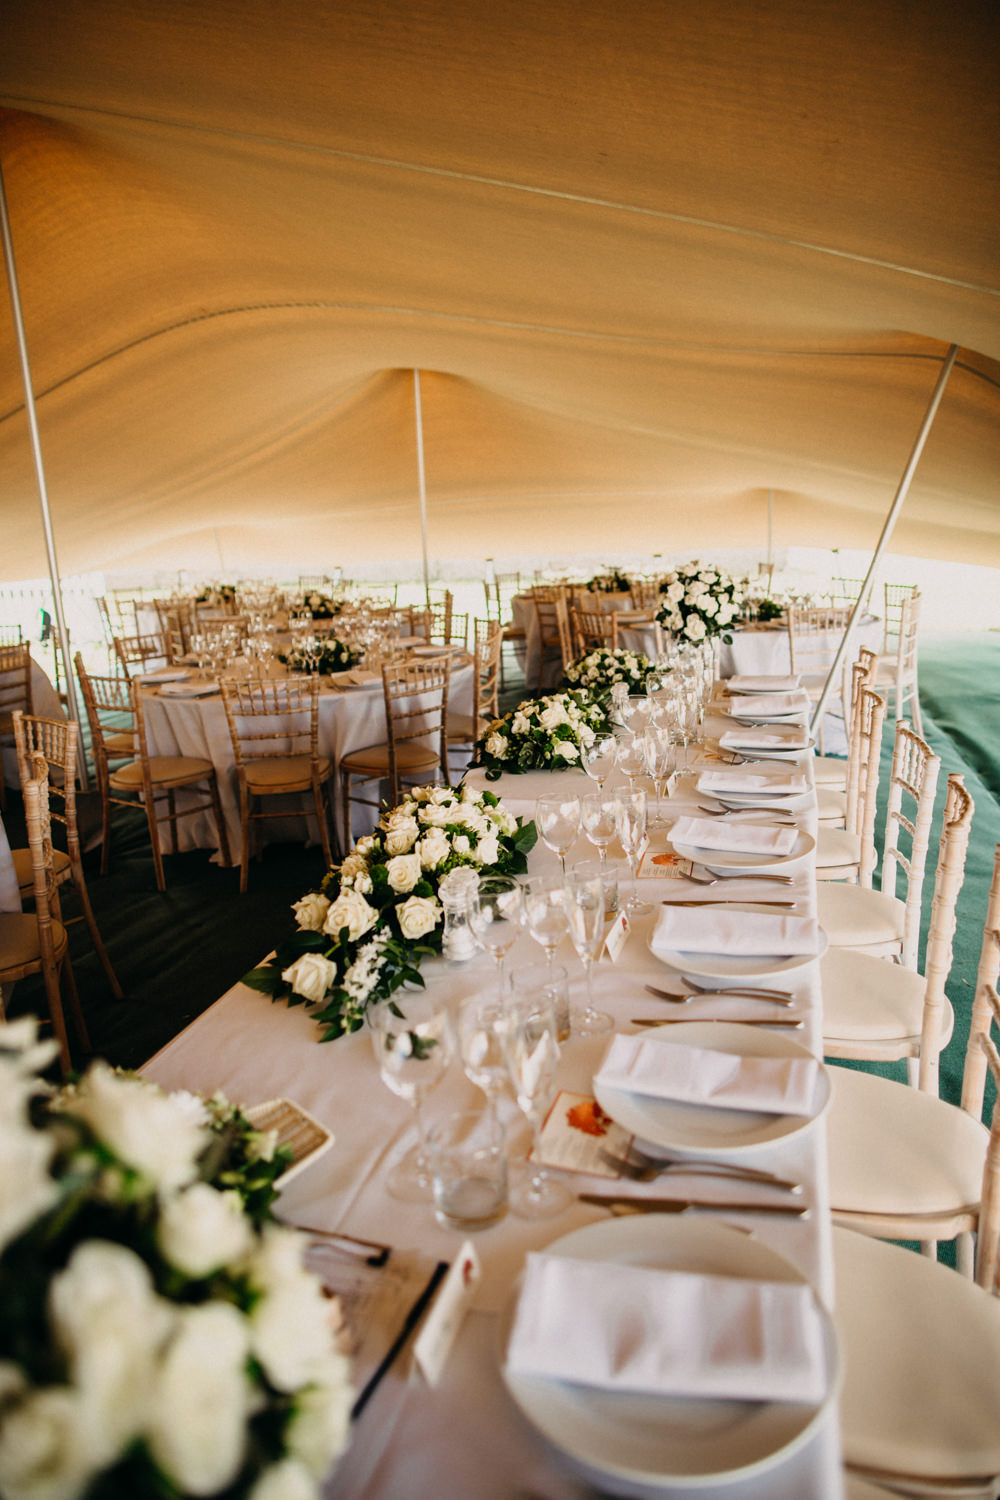 Outdoor Stretch Tent Wedding With Italian Antipasti Feast